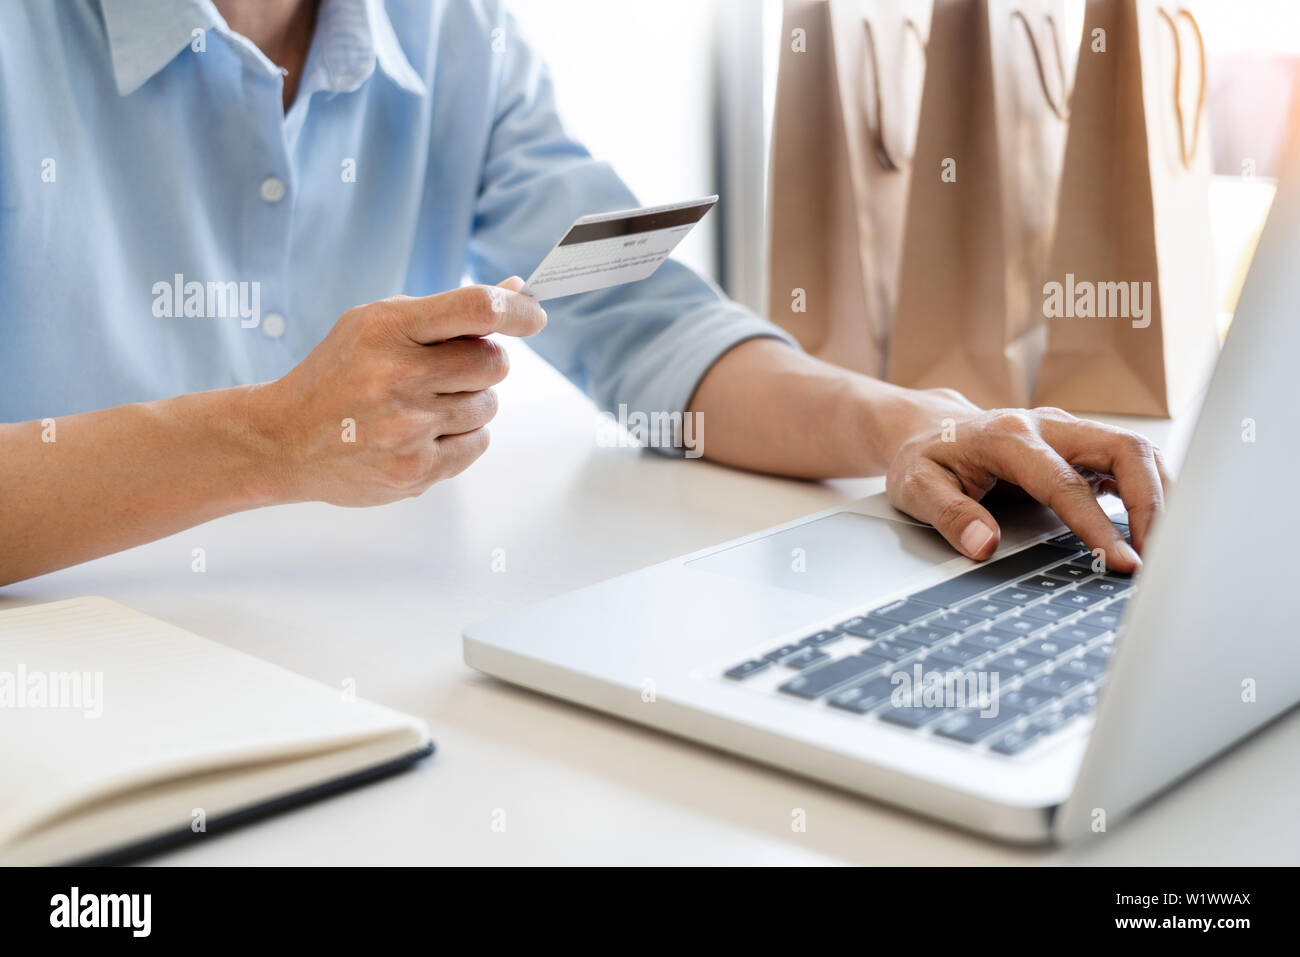 Man holding credit card in hand and entering security code